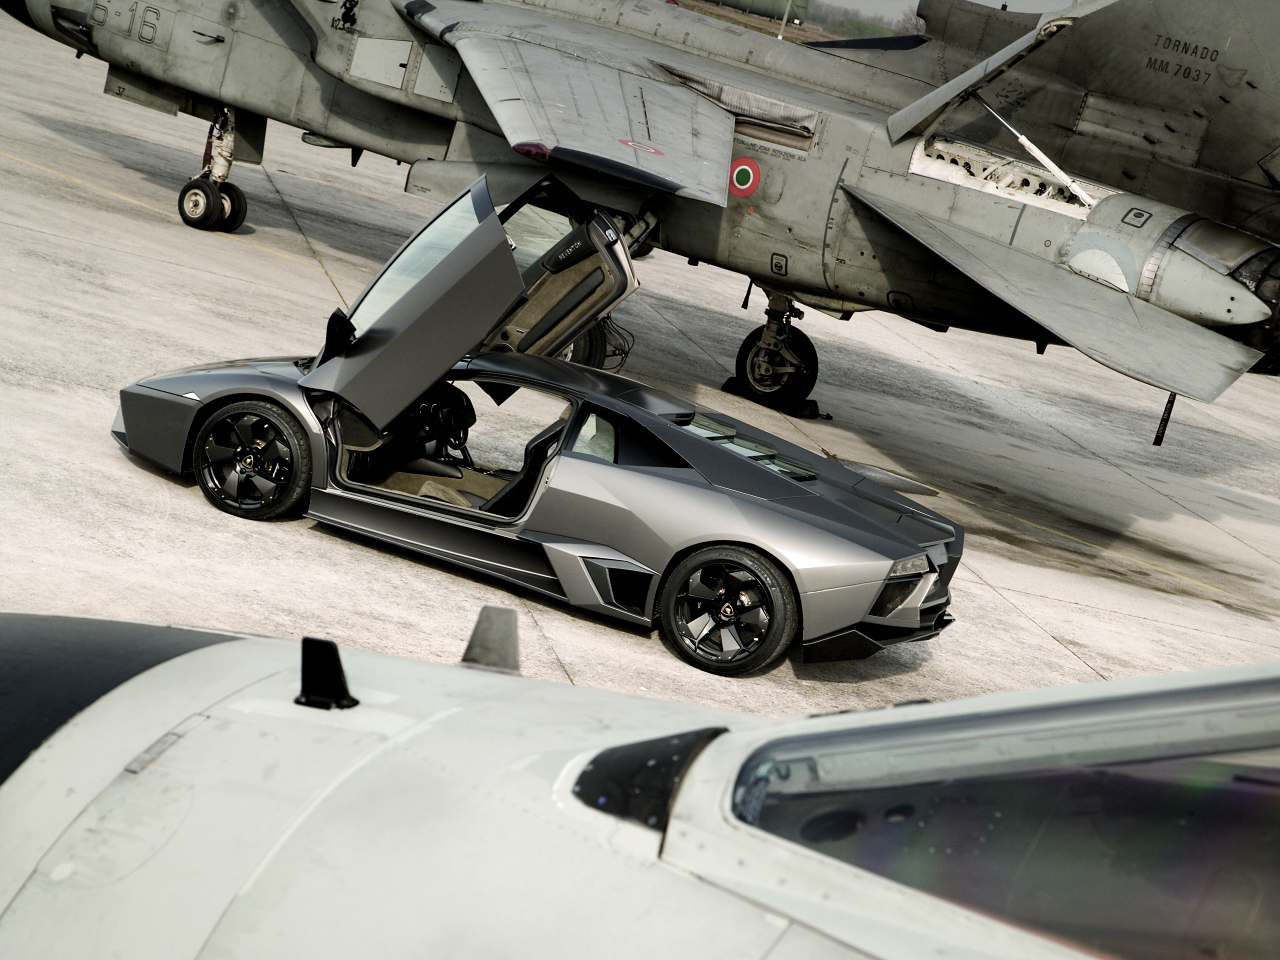 Lamborghini Reventon and jet fighters